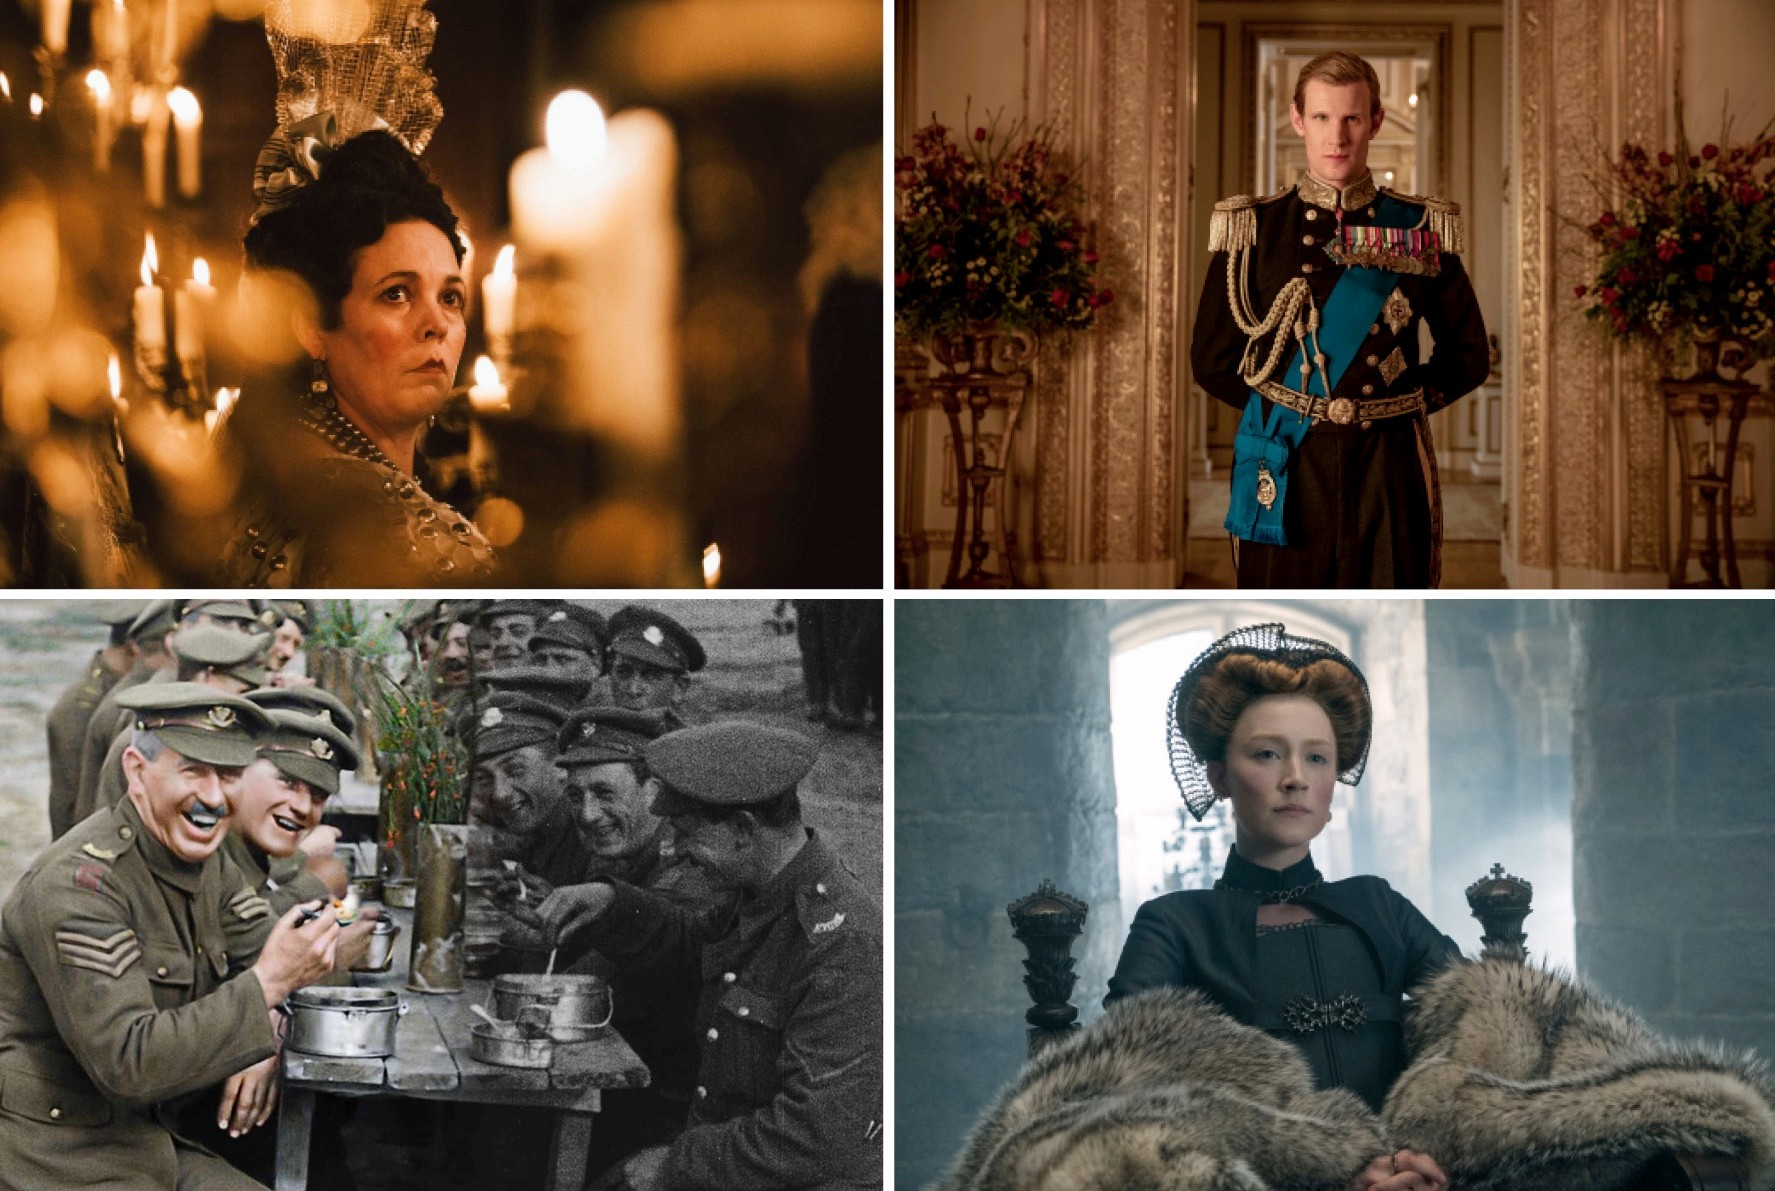 Clockwise from top left: Olivia Colman as Queen Anne in 'The Favourite'; Matt Smith as Prince Philip in 'The Crown'; Saoirse Ronan in 'Mary Queen of Scots'; a colourised scene from 'They Shall Not Grow Old'. (Images: © 2018 Twentieth Century Fox Film Corporation | Robert Viglasky / Netflix | © 2018 Focus Features LLC | WingNut Films/Peter Jackson. Original black and white film © IWM)